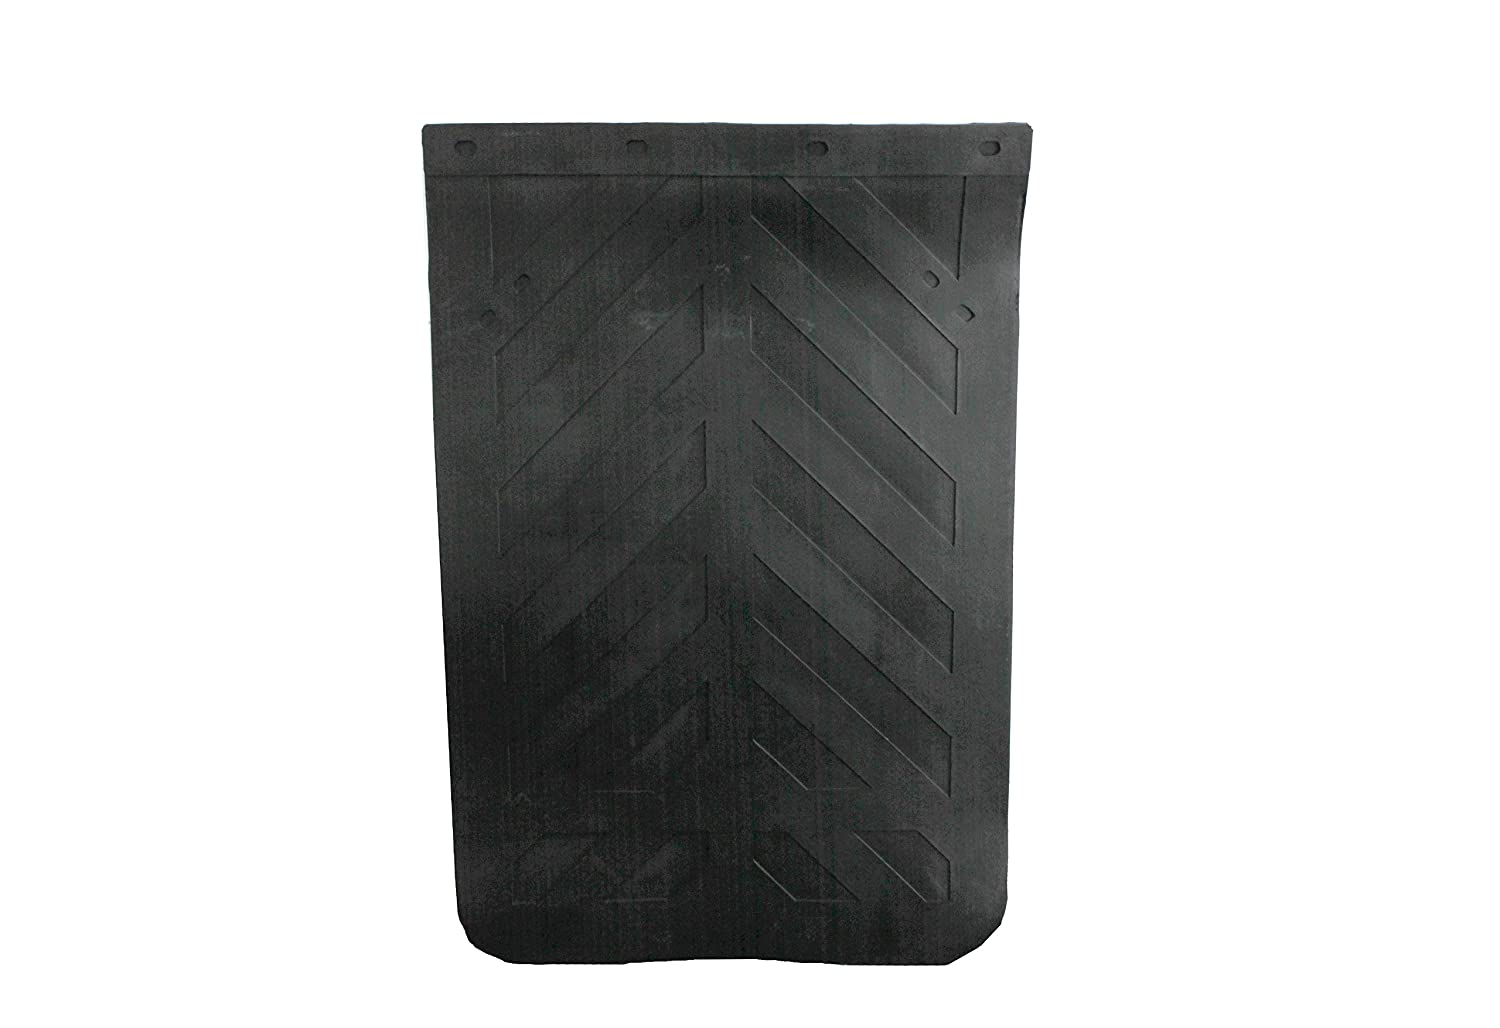 Semi Truck Tractor ONE Mud Flap Oversize Universal Fit 24 x 36 Heavy Duty Rubber SINGLE